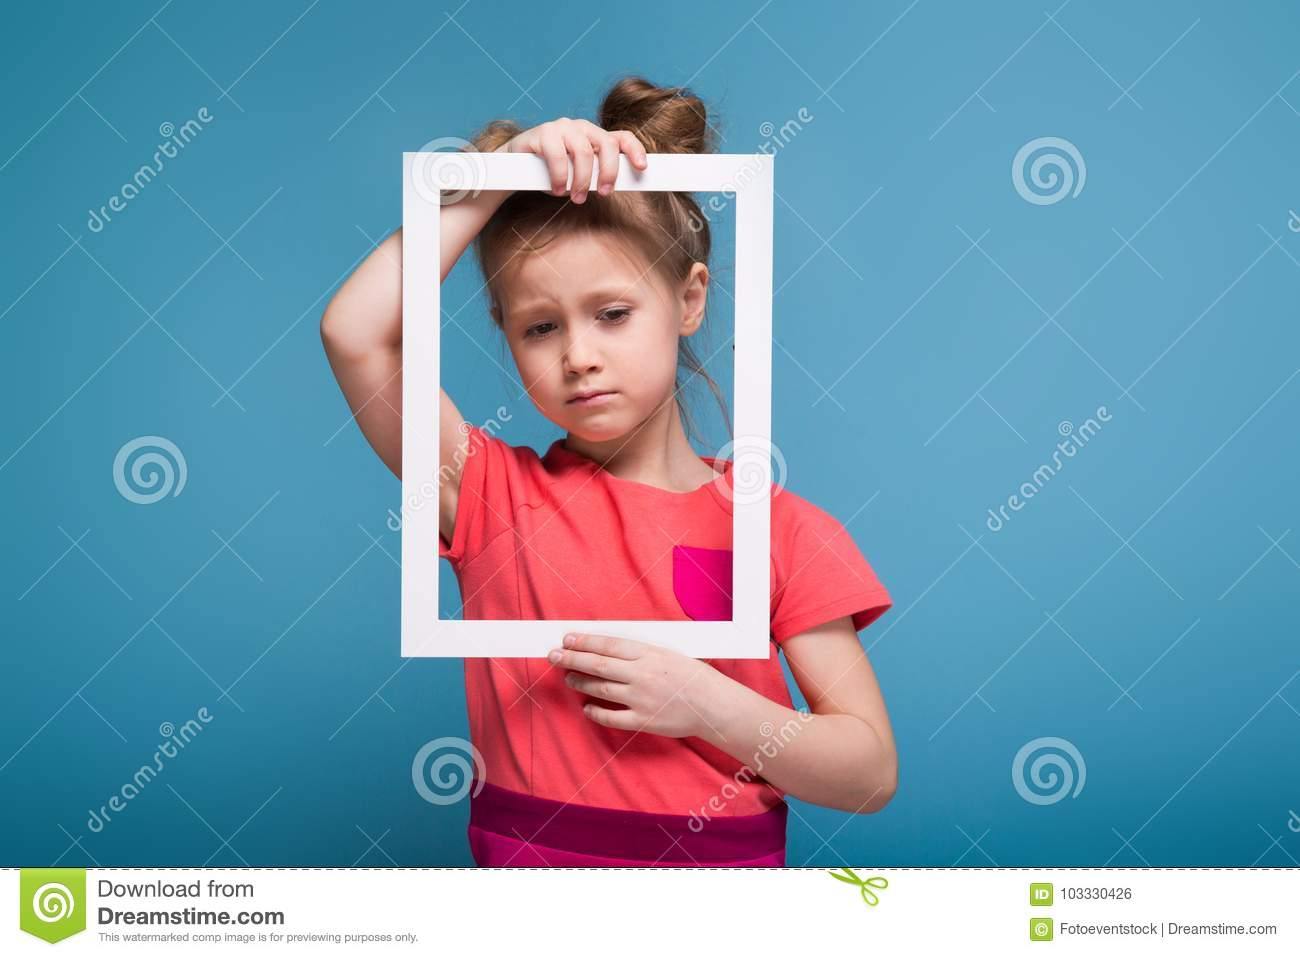 a084a7bef8c6 Isolated on blue, pretty, cute little caucasian brunette girl in pink dress  holds white picture frame, look through the frame, making sad face